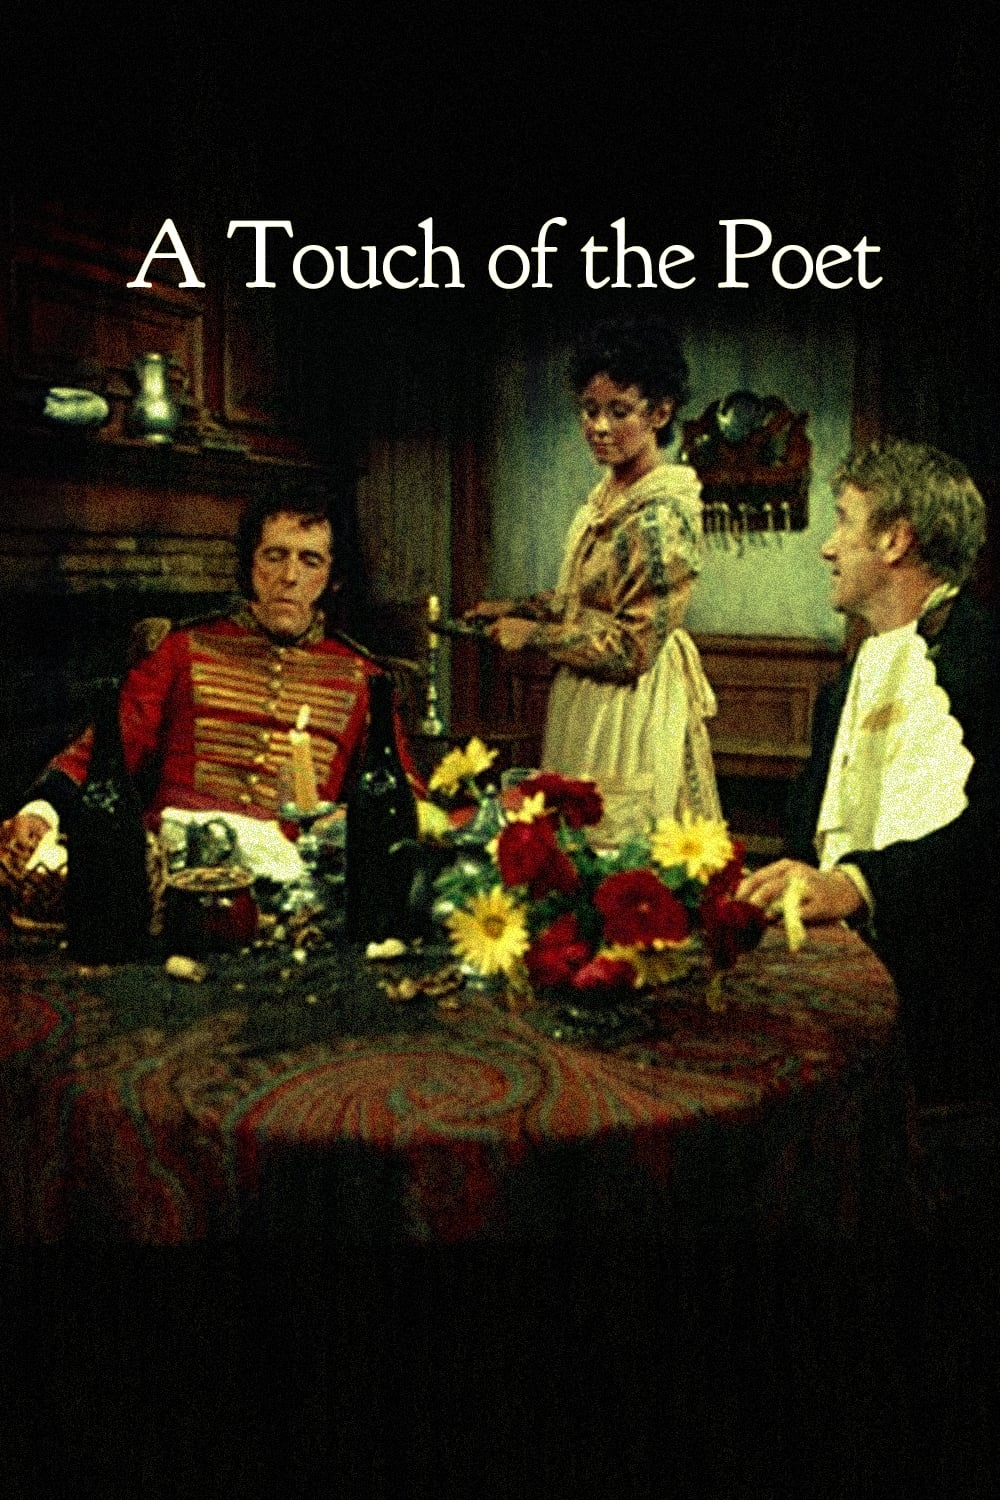 A Touch of the Poet (1974)